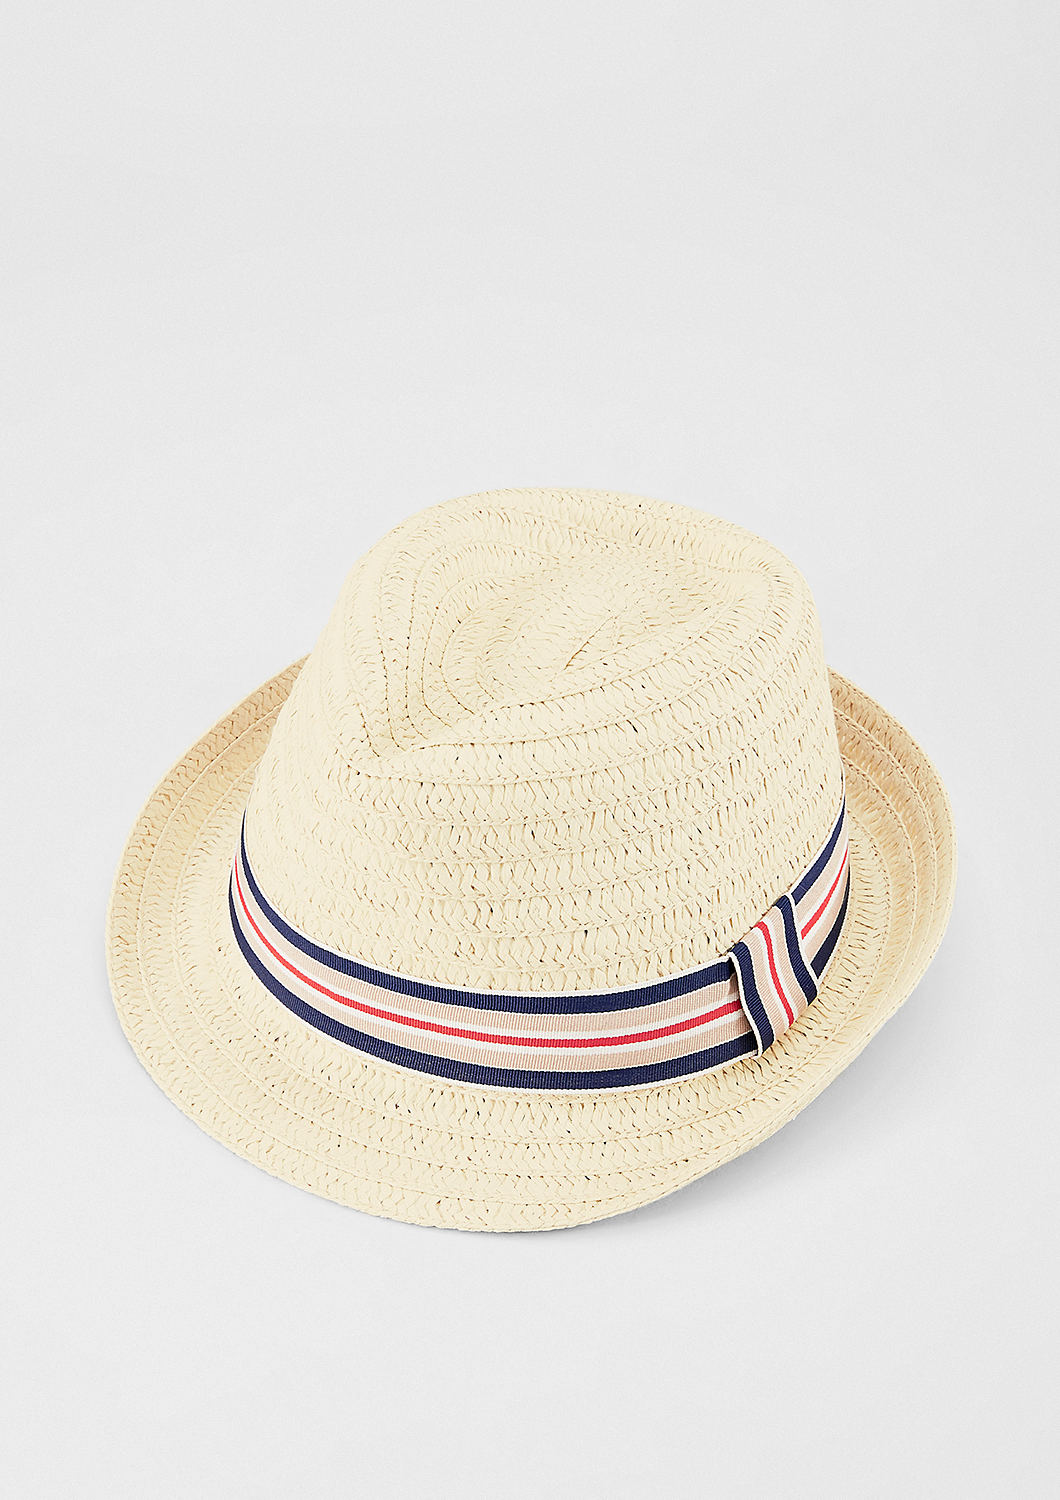 933d38a80 Buy Lightweight paper hat with a contrast band | s.Oliver shop